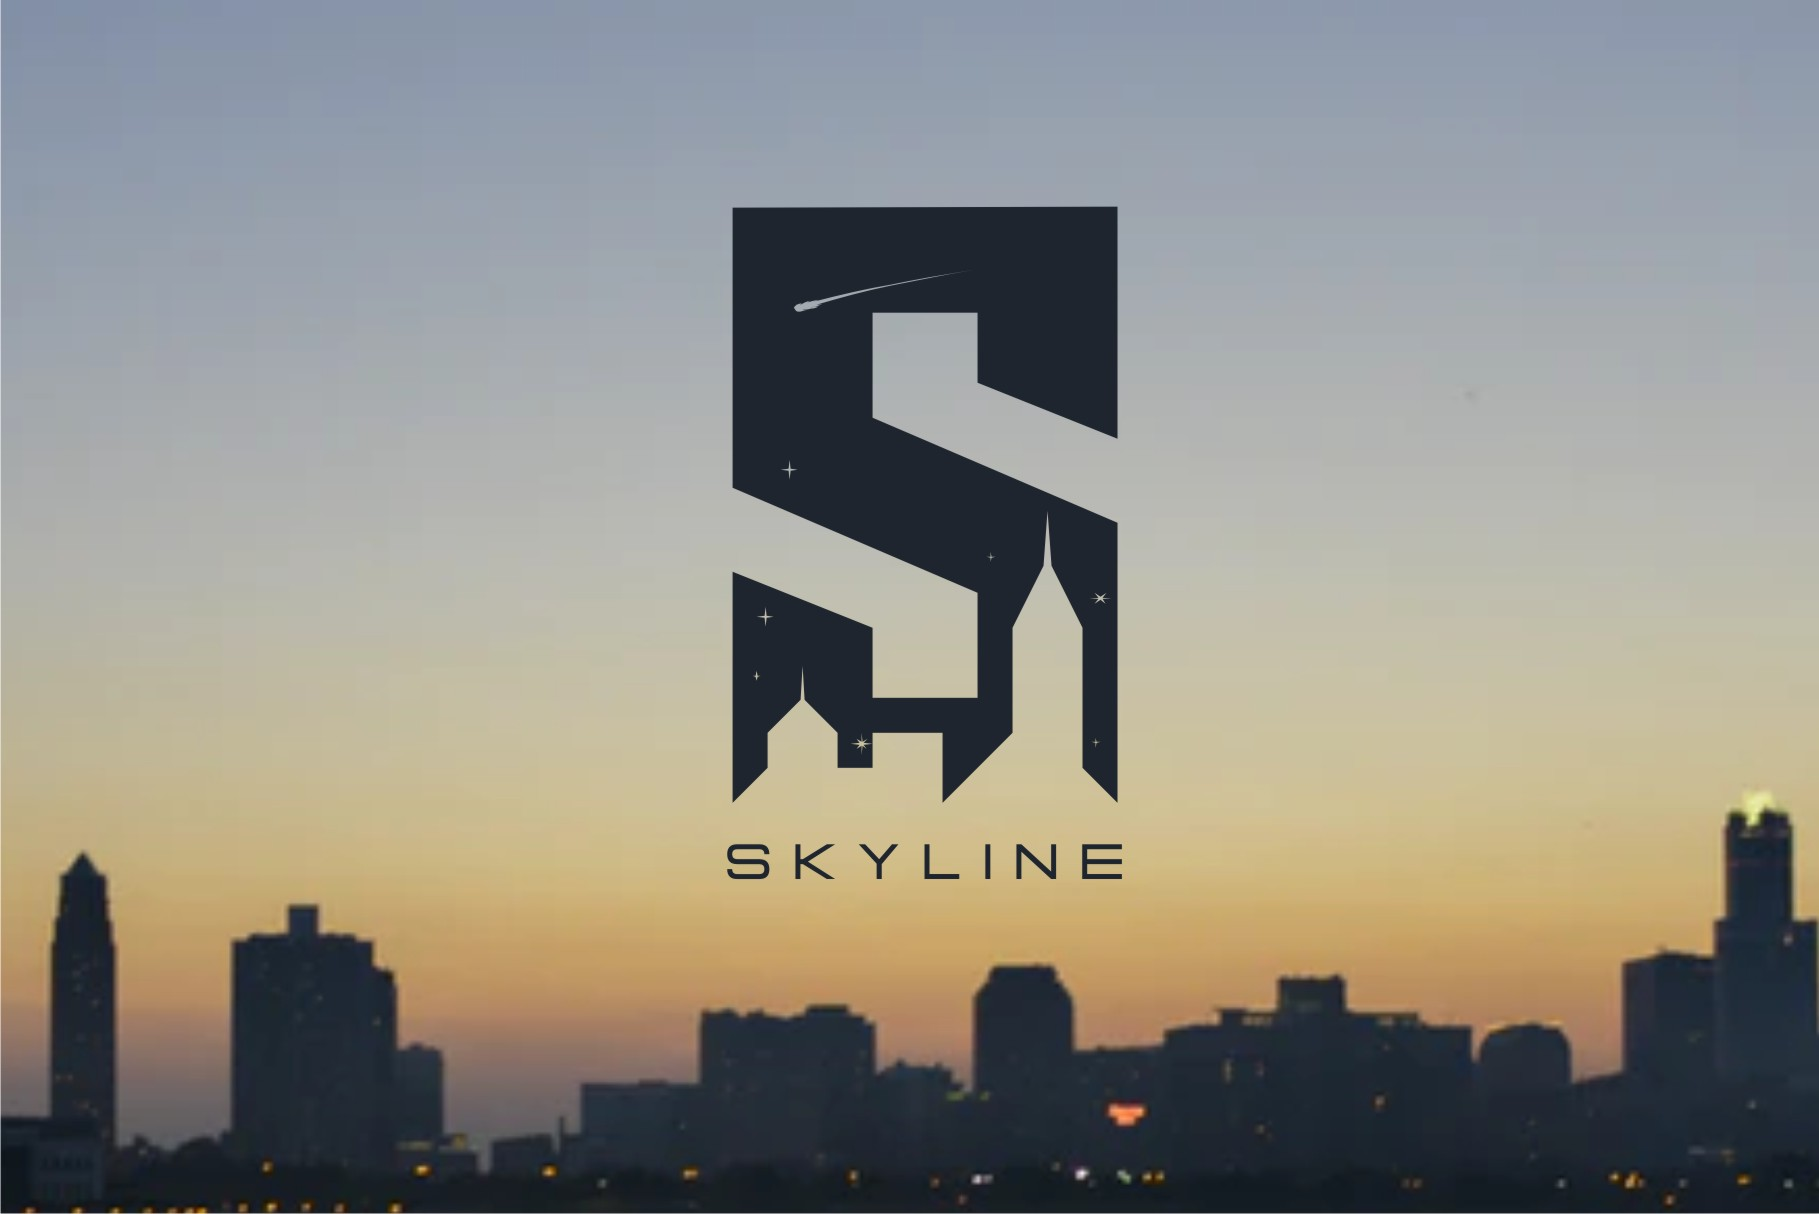 SKYLINE example image 3